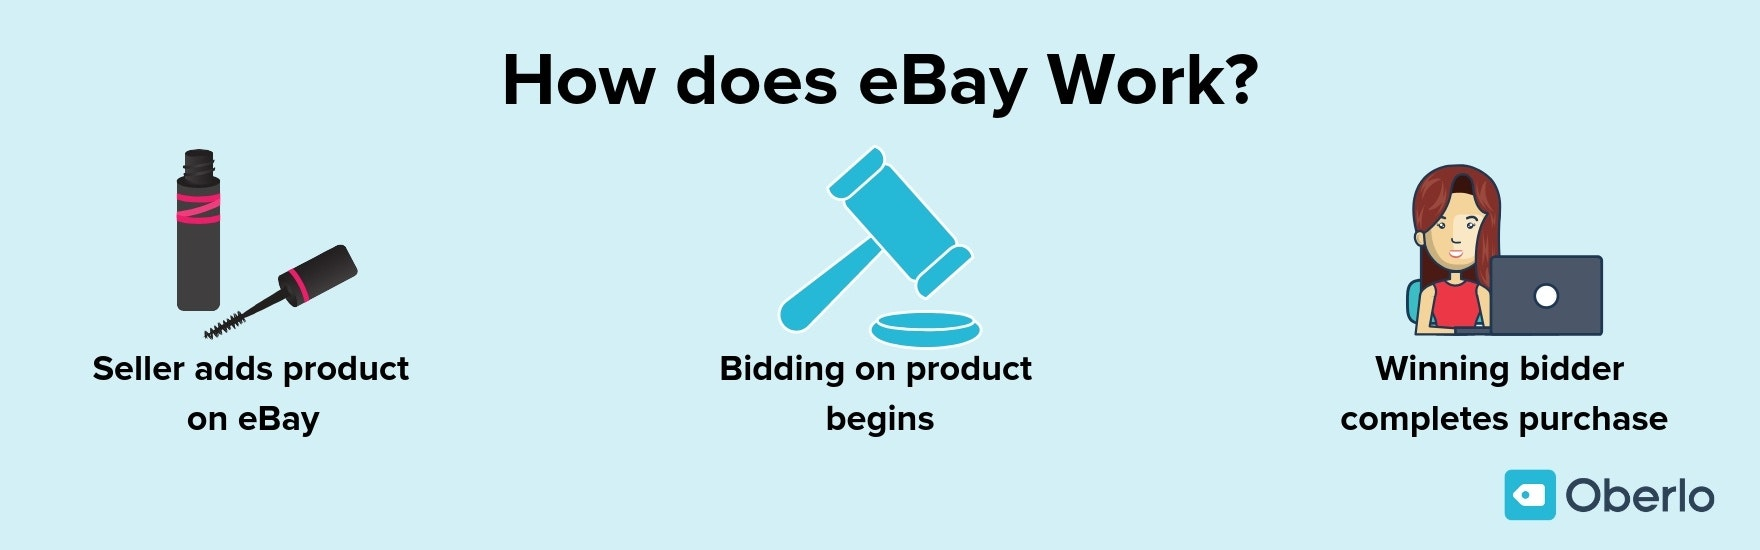 how does ebay work